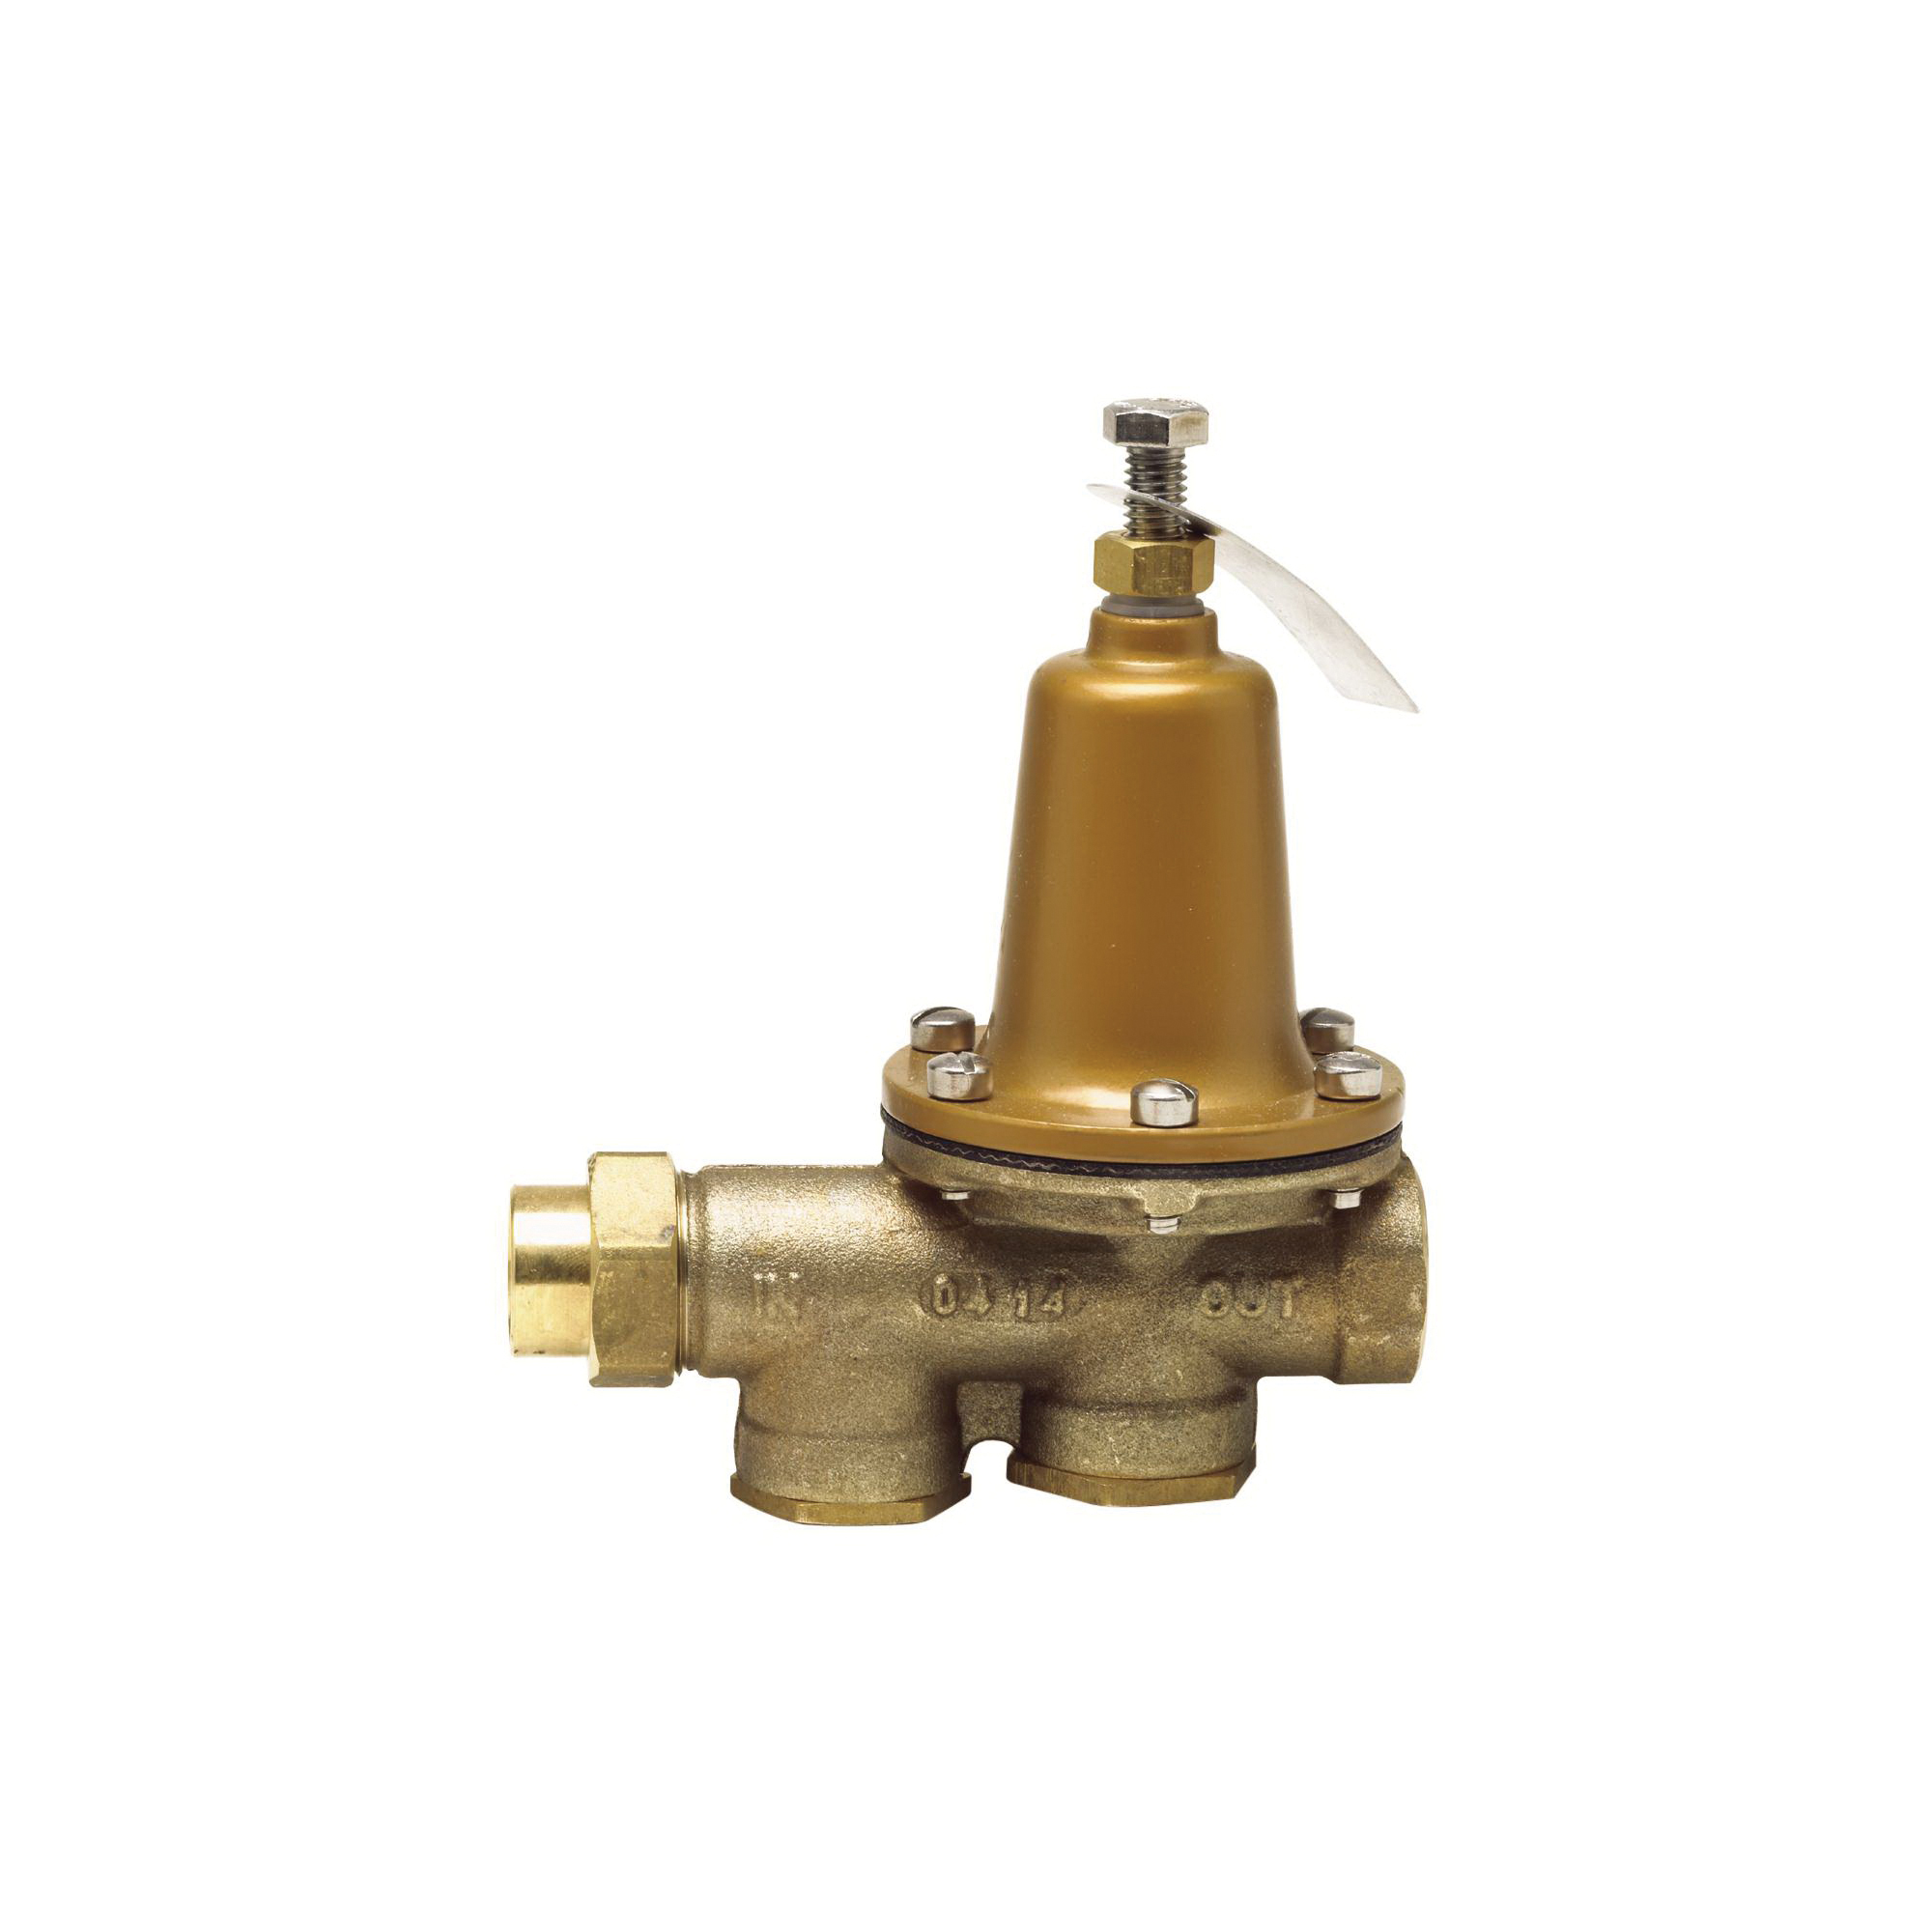 WATTS® LF25AUB-Z3 Standard Capacity Lead Free Pressure Reducing Valve with Bypass Check Valve, 1-1/4 in